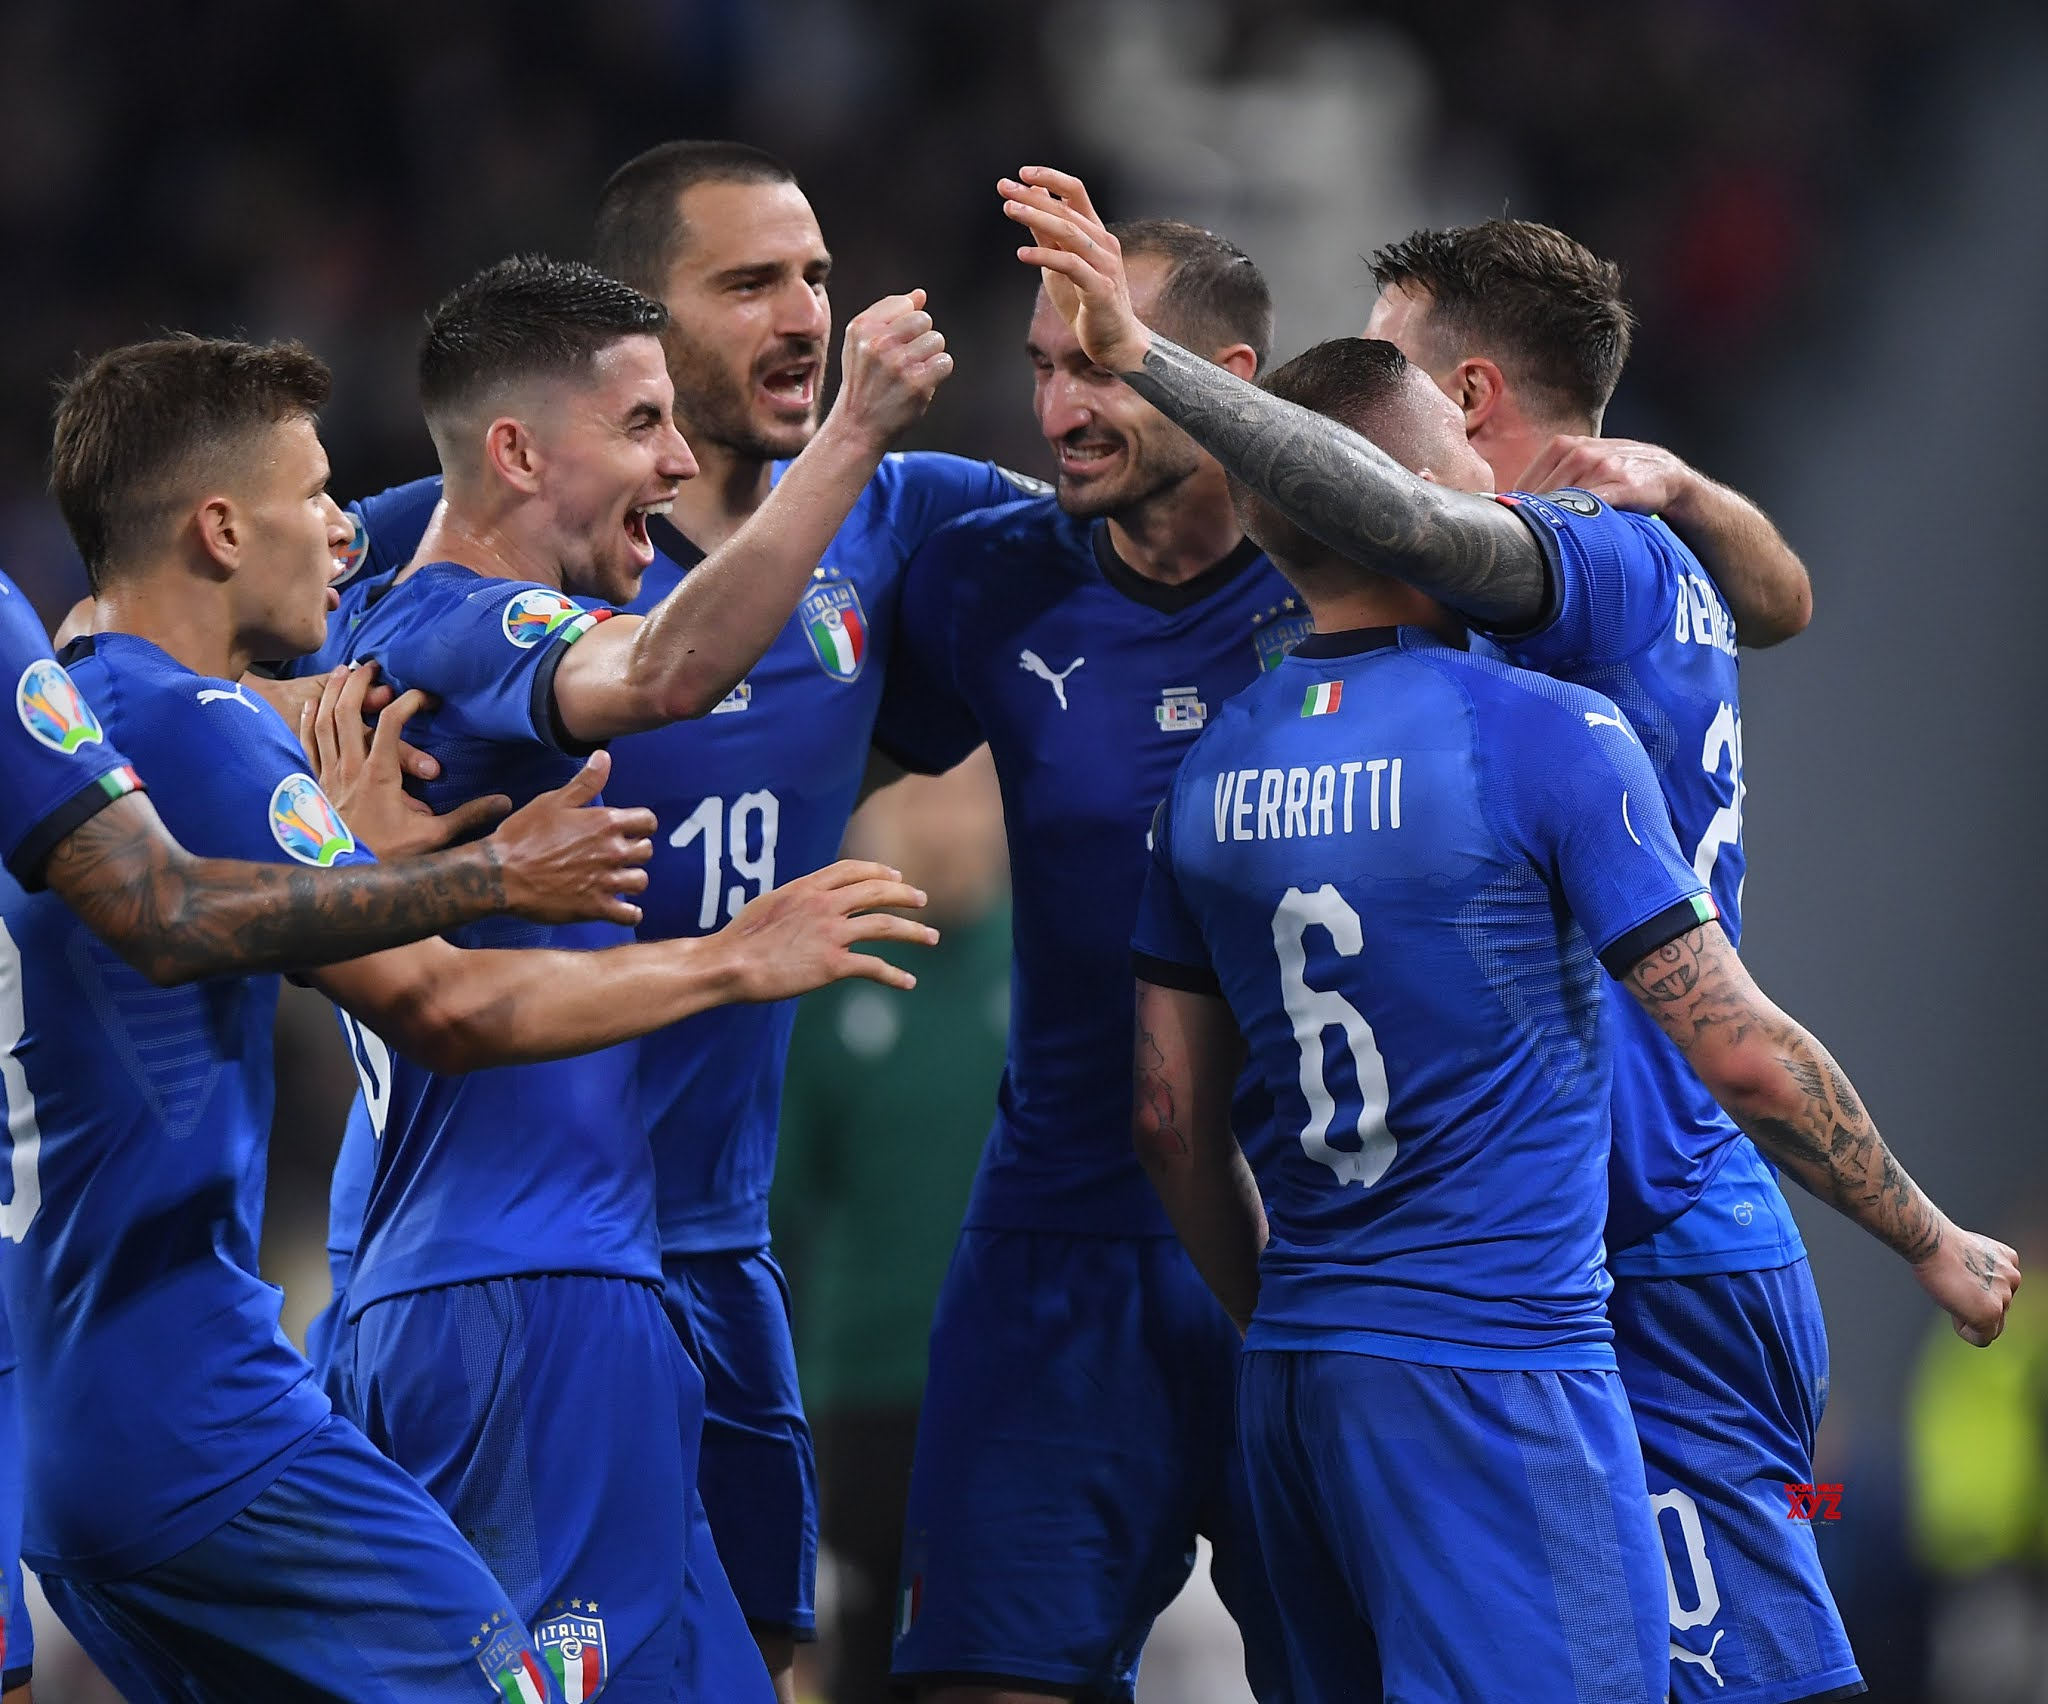 The Azzurri are getting back to their best under the tutelage of Roberto Mancini